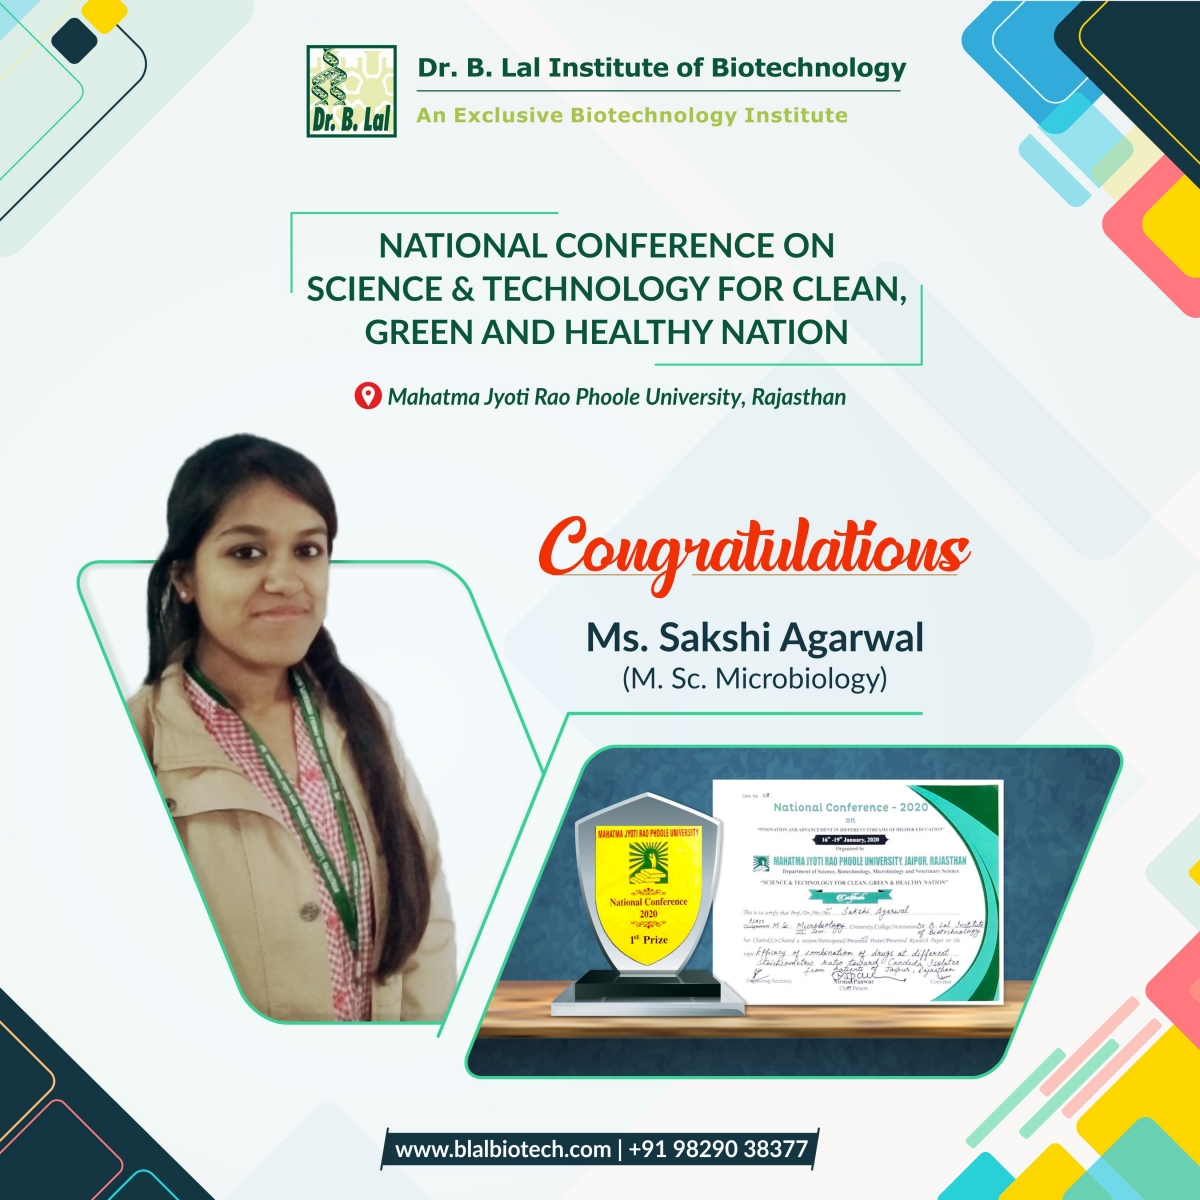 National Conference on Science and Technology for Clean, Green and Healthy Nation